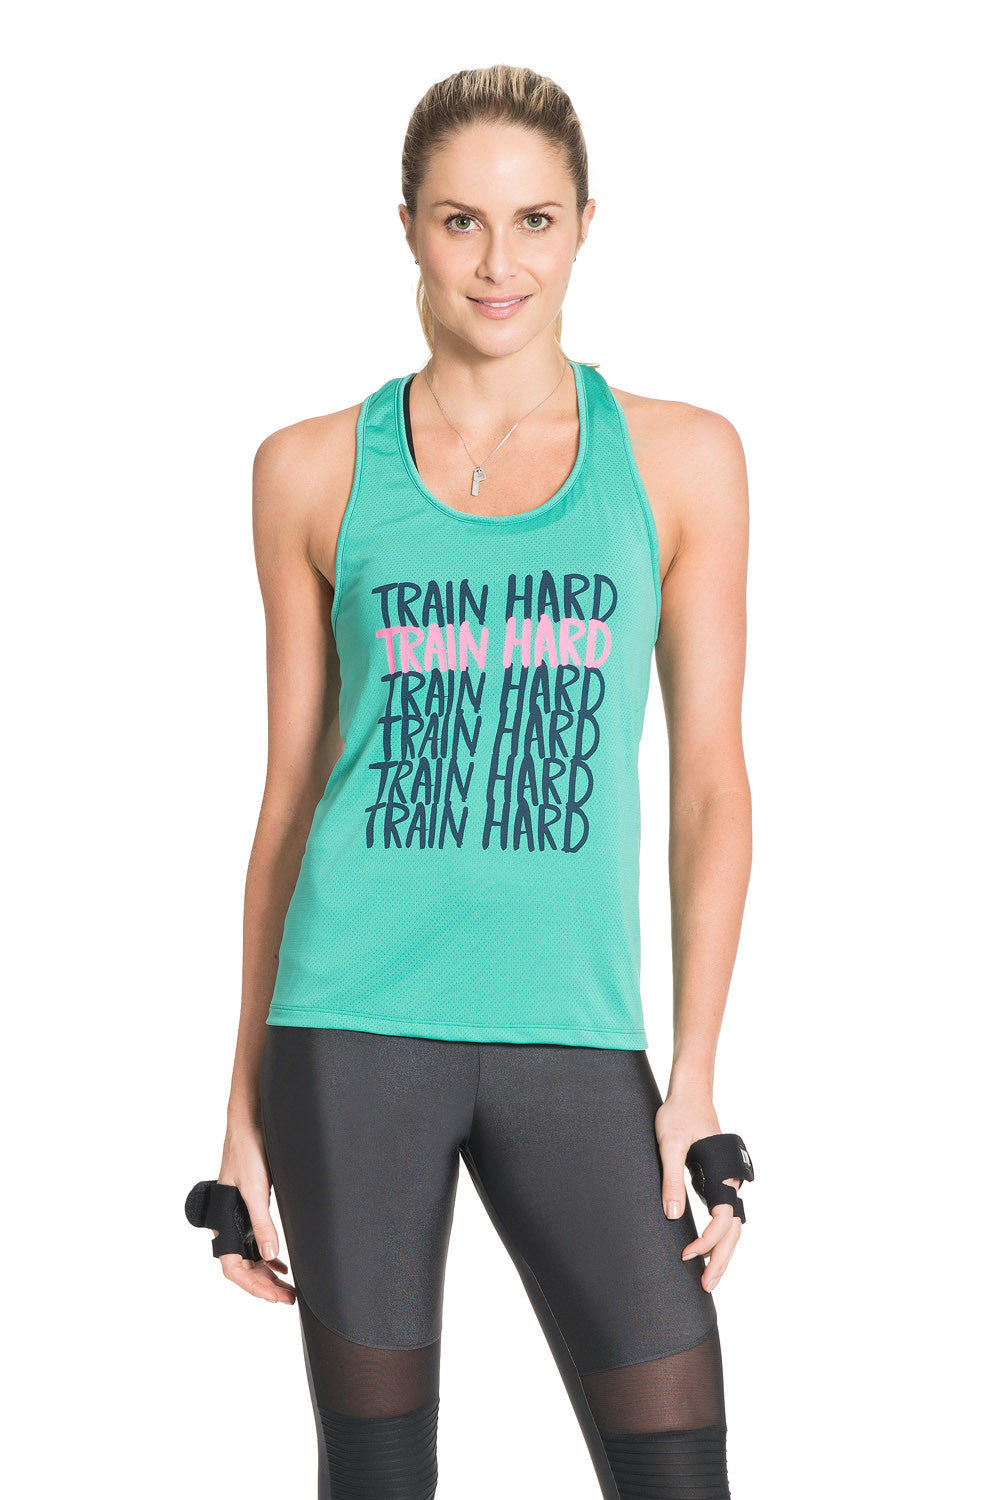 Glow Train Hard Racerback Tank